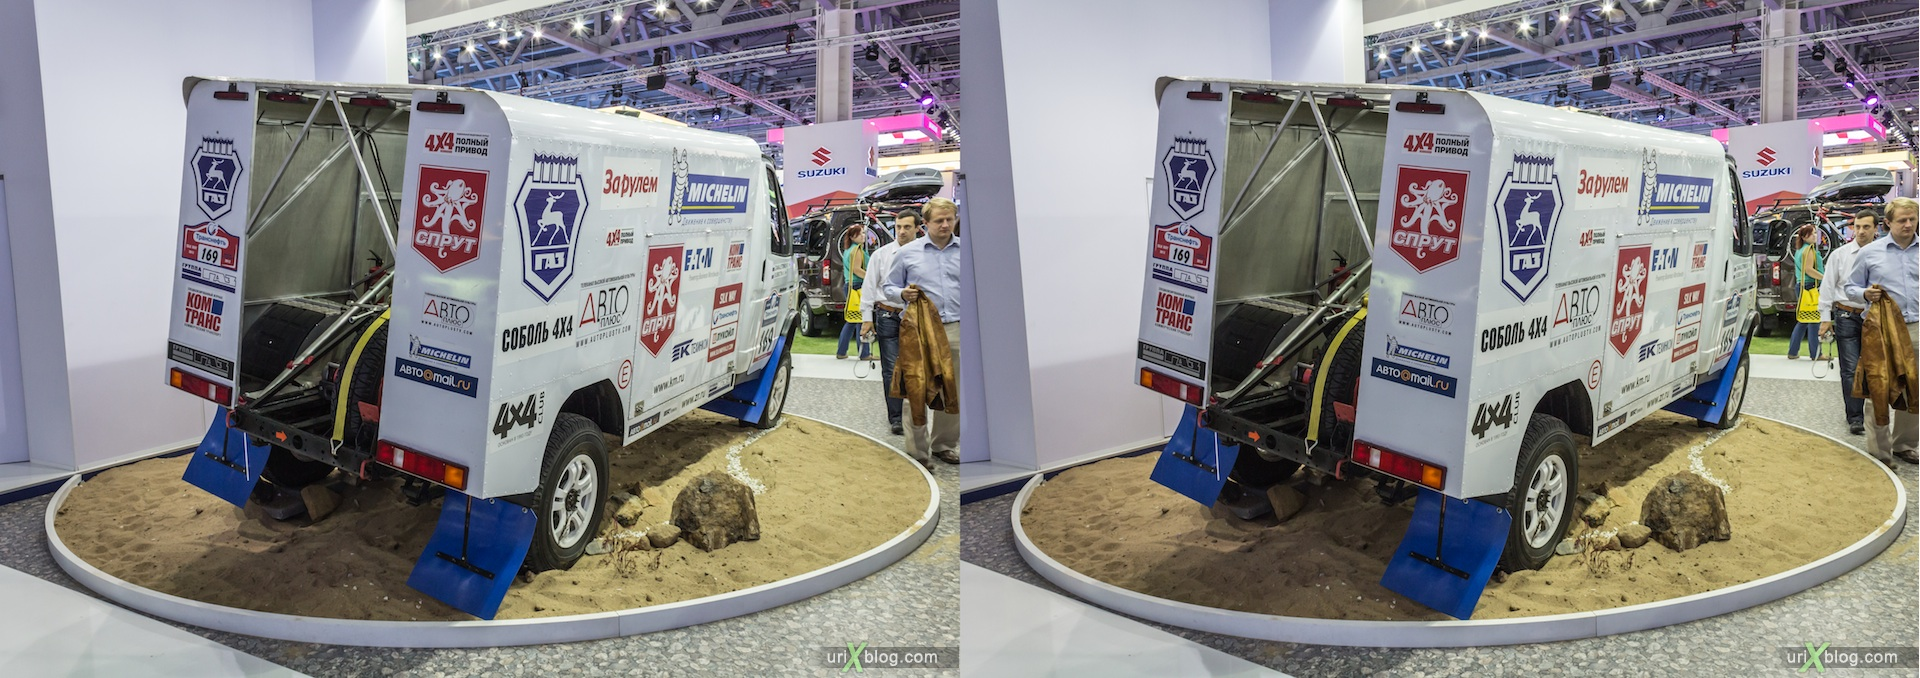 2012, ГАЗ, Moscow International Automobile Salon, auto show, 3D, stereo pair, cross-eyed, crossview